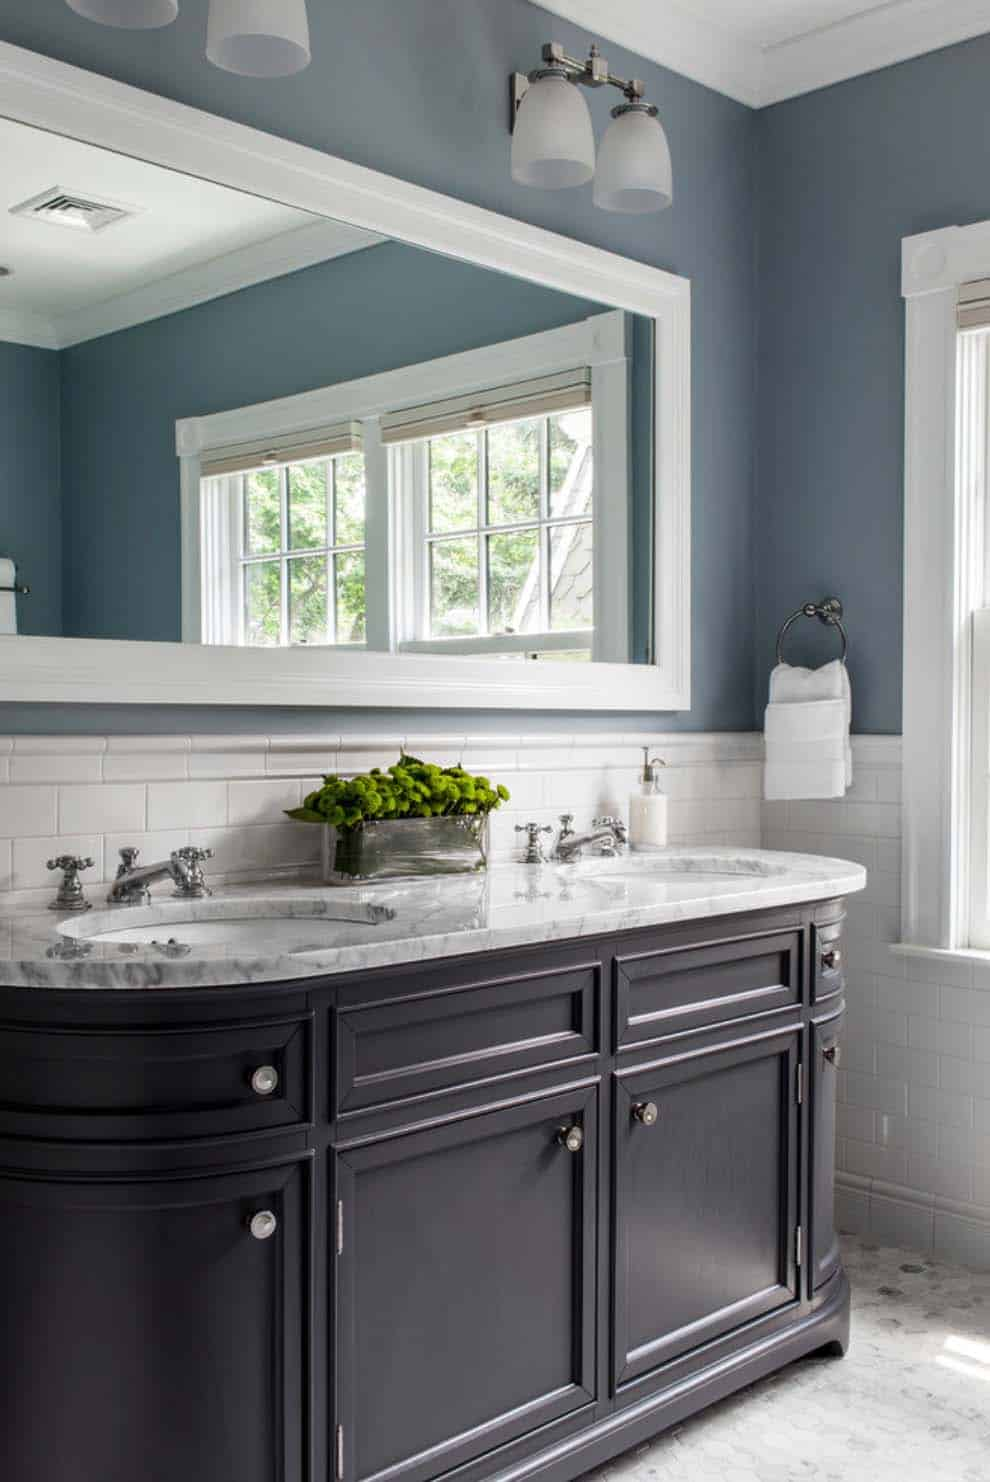 53 Most fabulous traditional style bathroom designs ever on Bathroom Remodel Design Ideas  id=77482